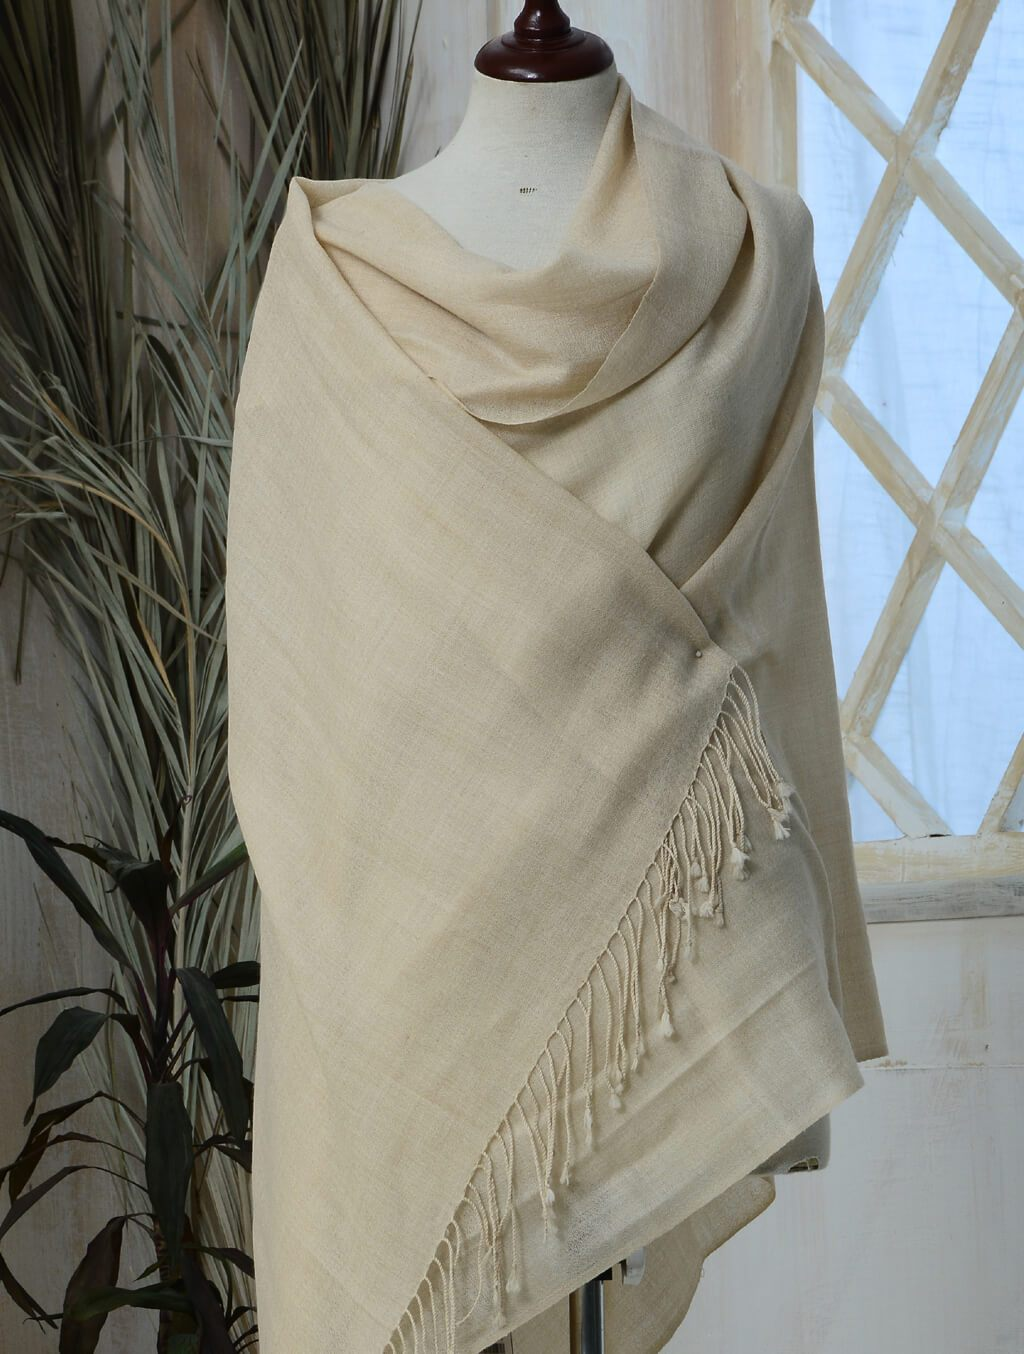 Simple Cashmere Shawl IHC-R-01-02 OFF WHITE Wraps FASSTILAD